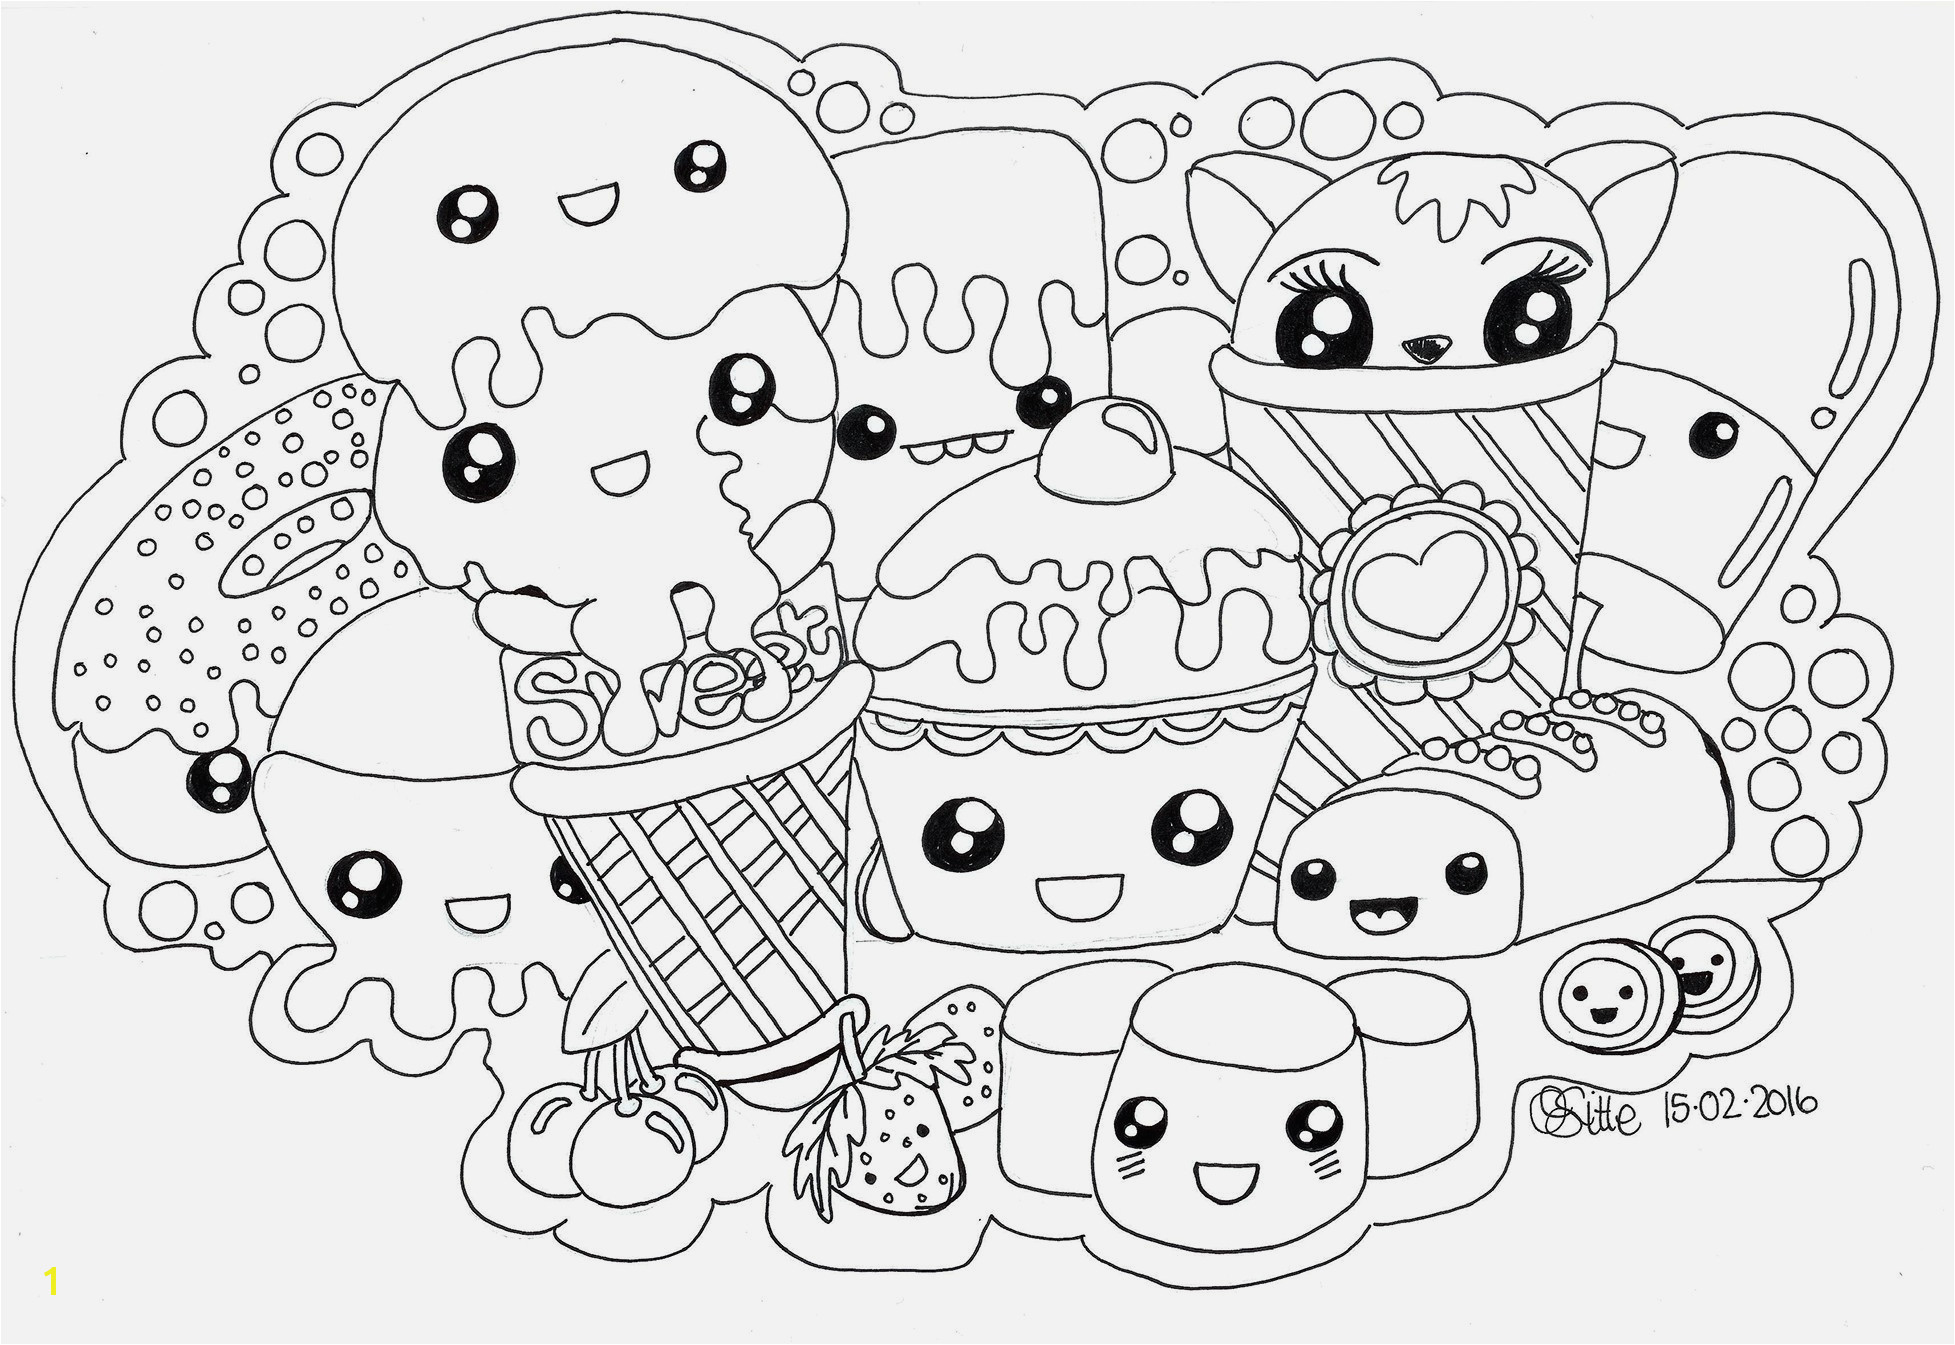 Kawaii Coloring Pages Amazing Advantages Kawaii Food Coloring Pages Awesome Kawaii Coloring Pages Od Fruits